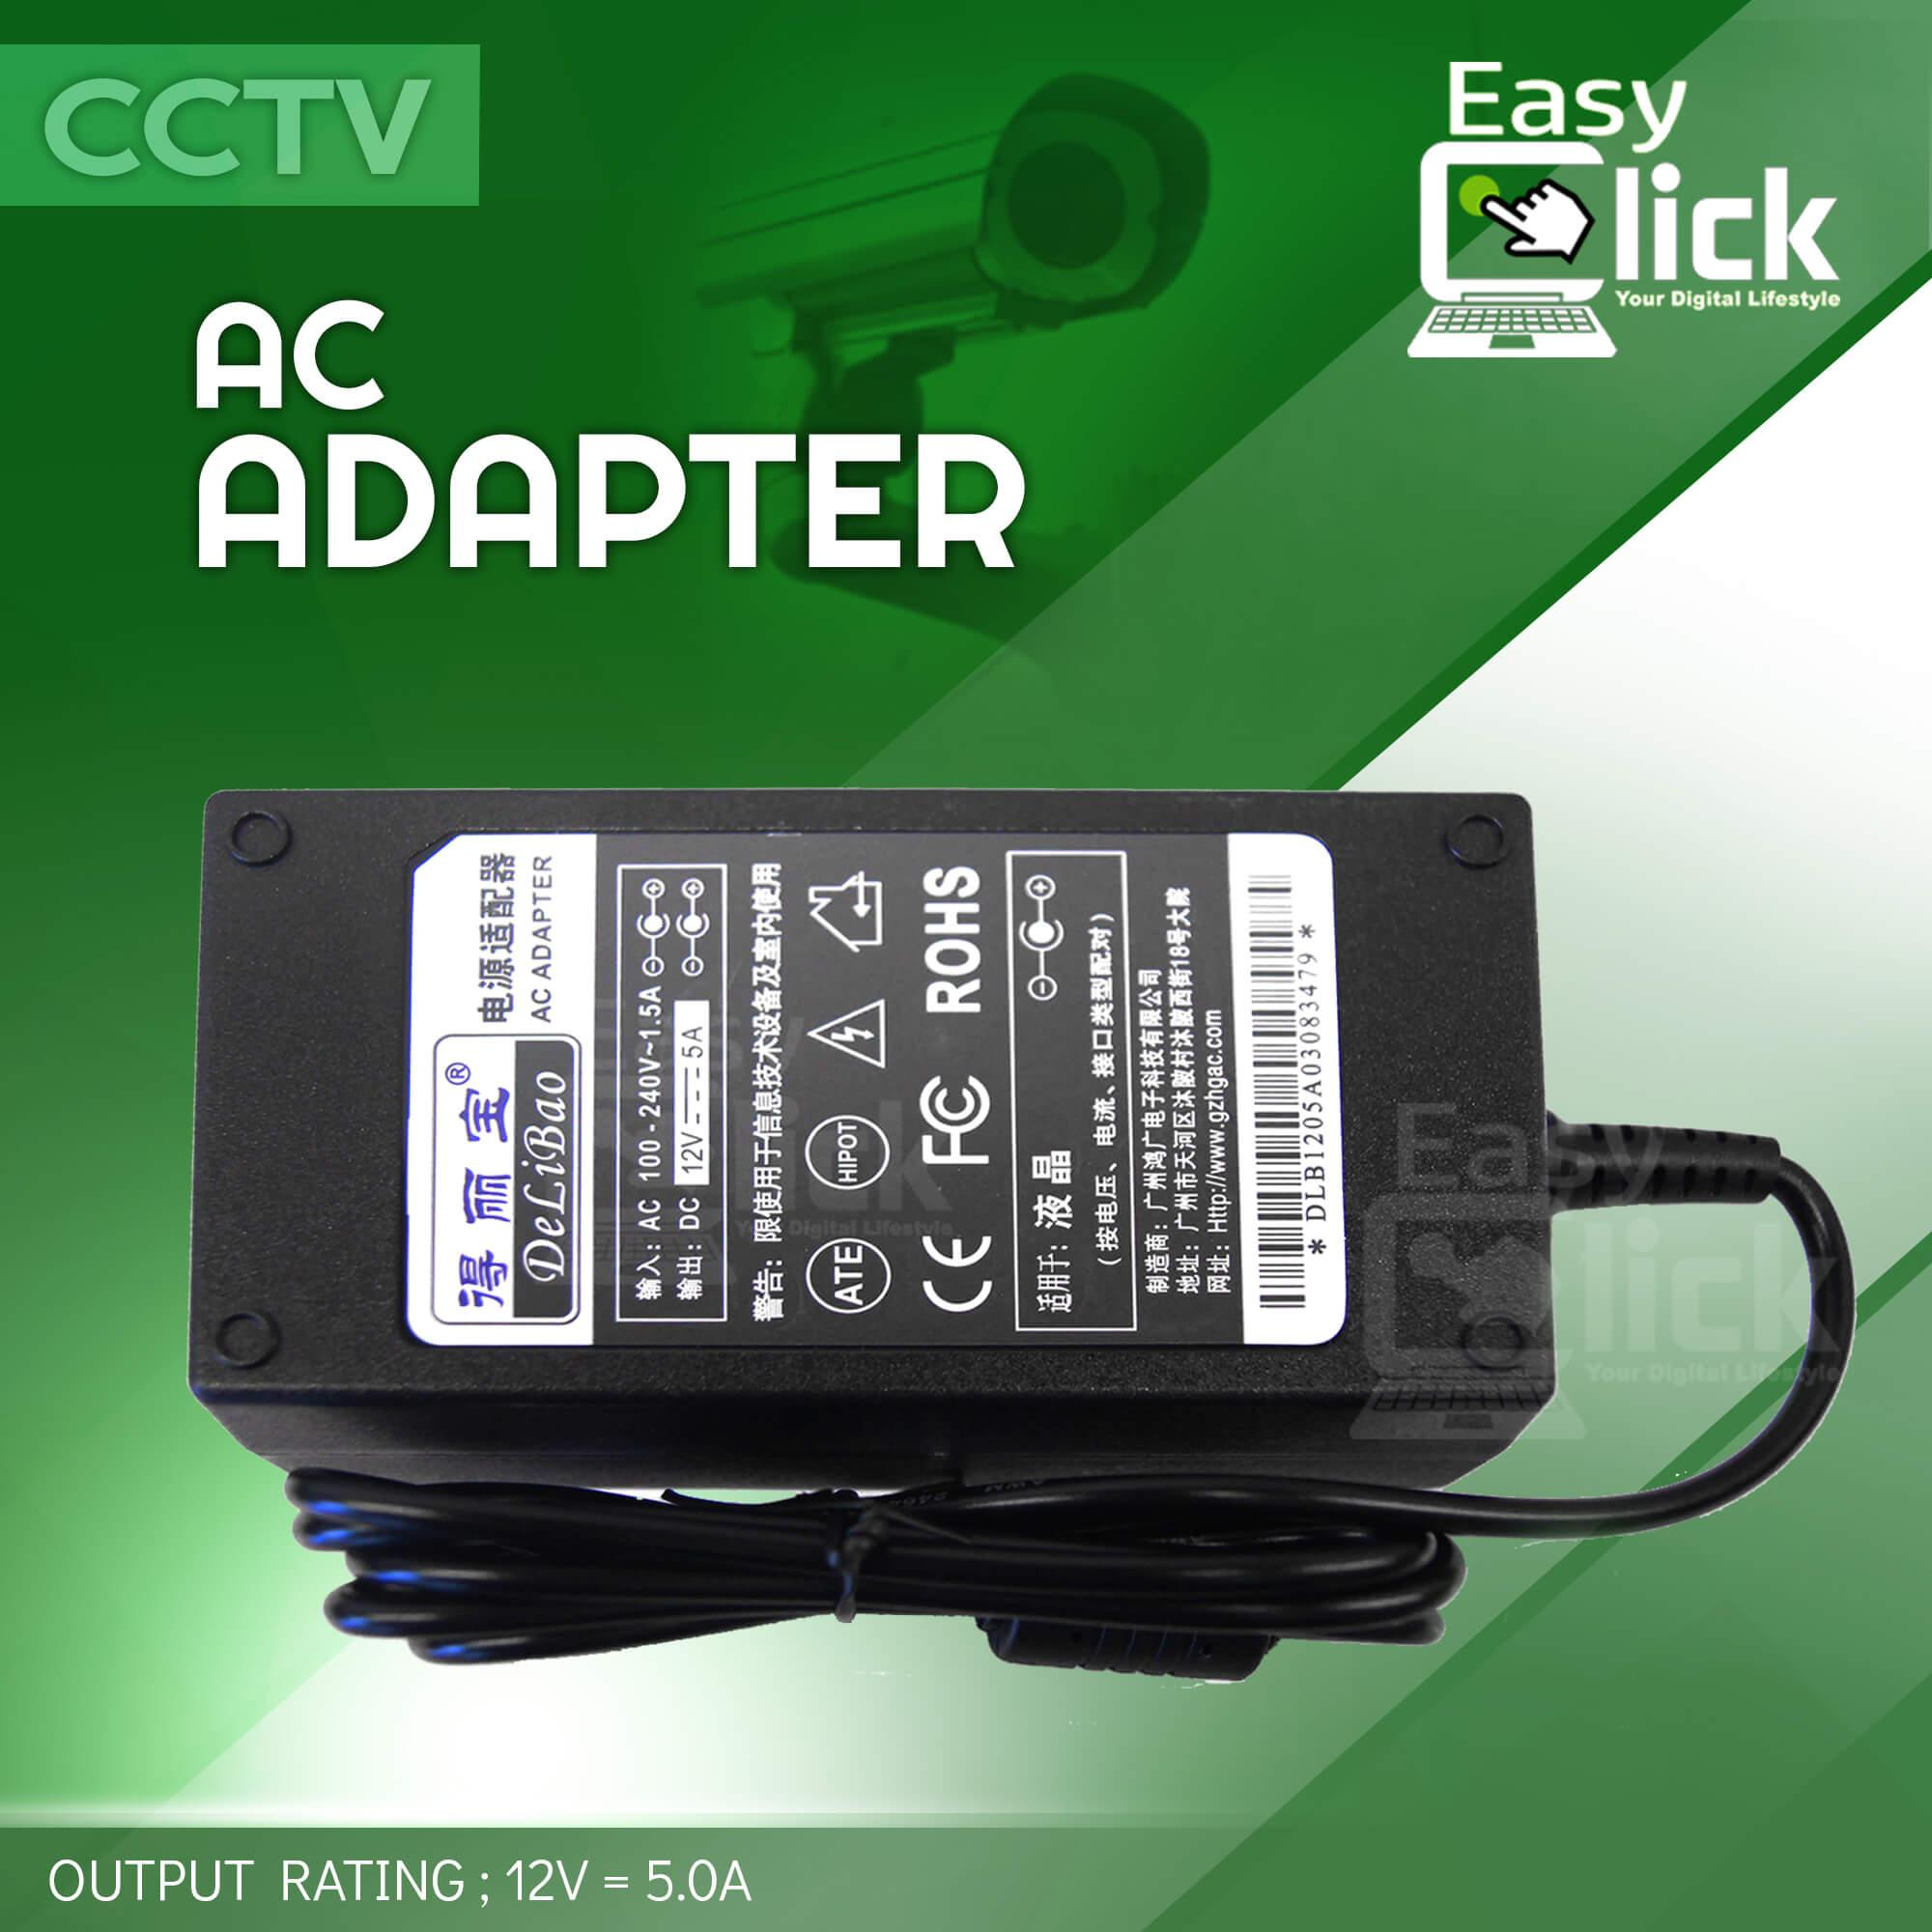 ... 8 Way CCTV DC Power Splitter Adapter Cable- 12V 9V PSU Security. PHP 641